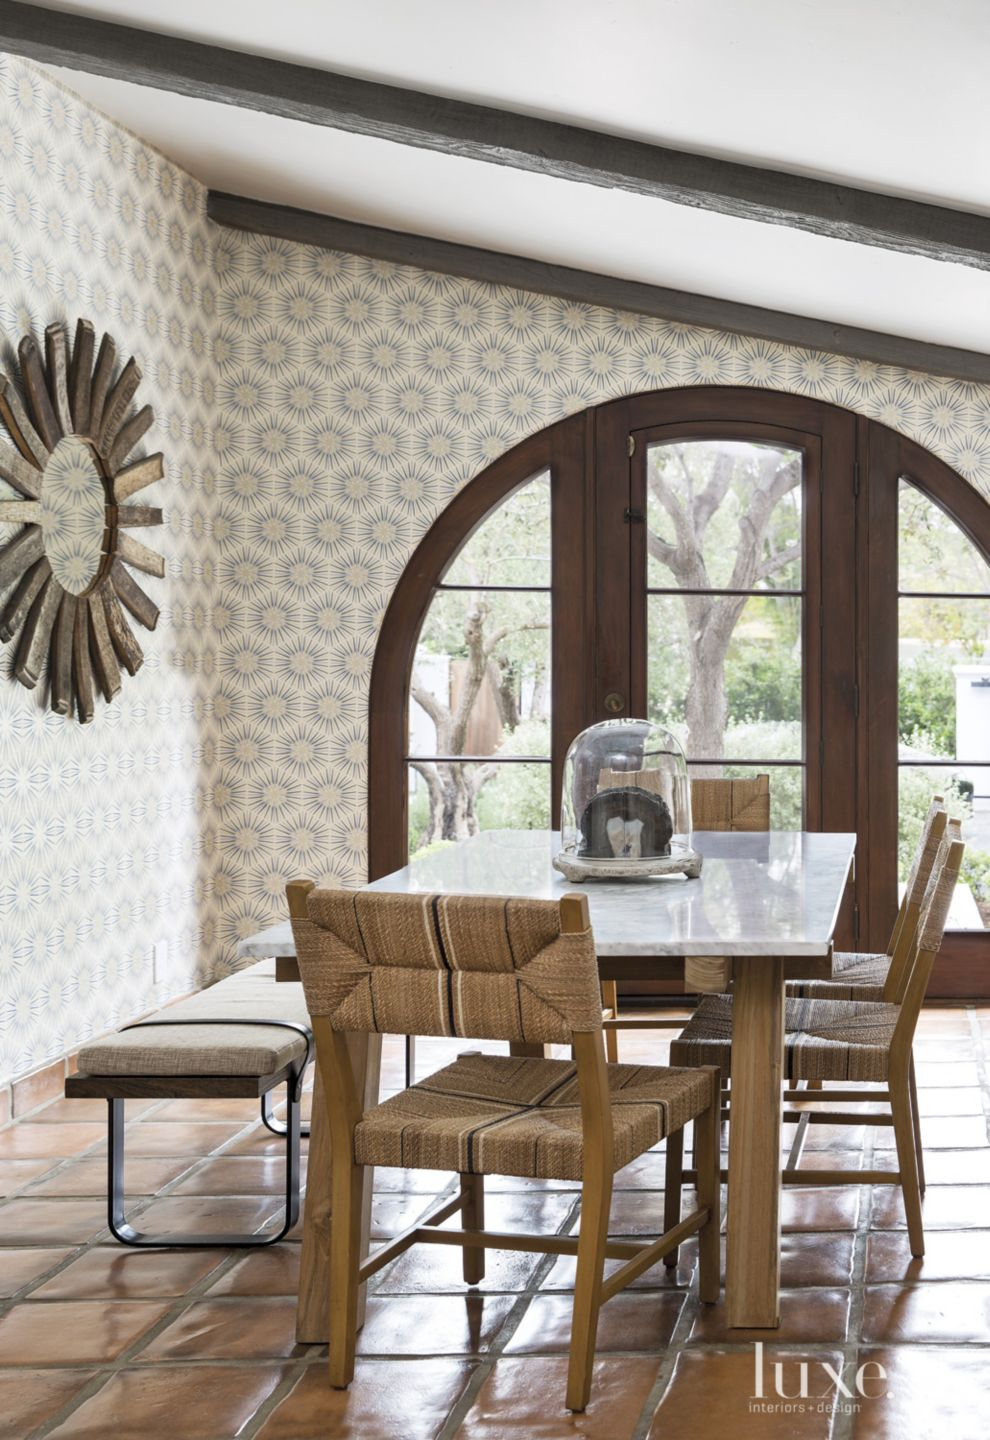 Spanish Colonial Neutral Breakfast Area with Patterned Wallpaper